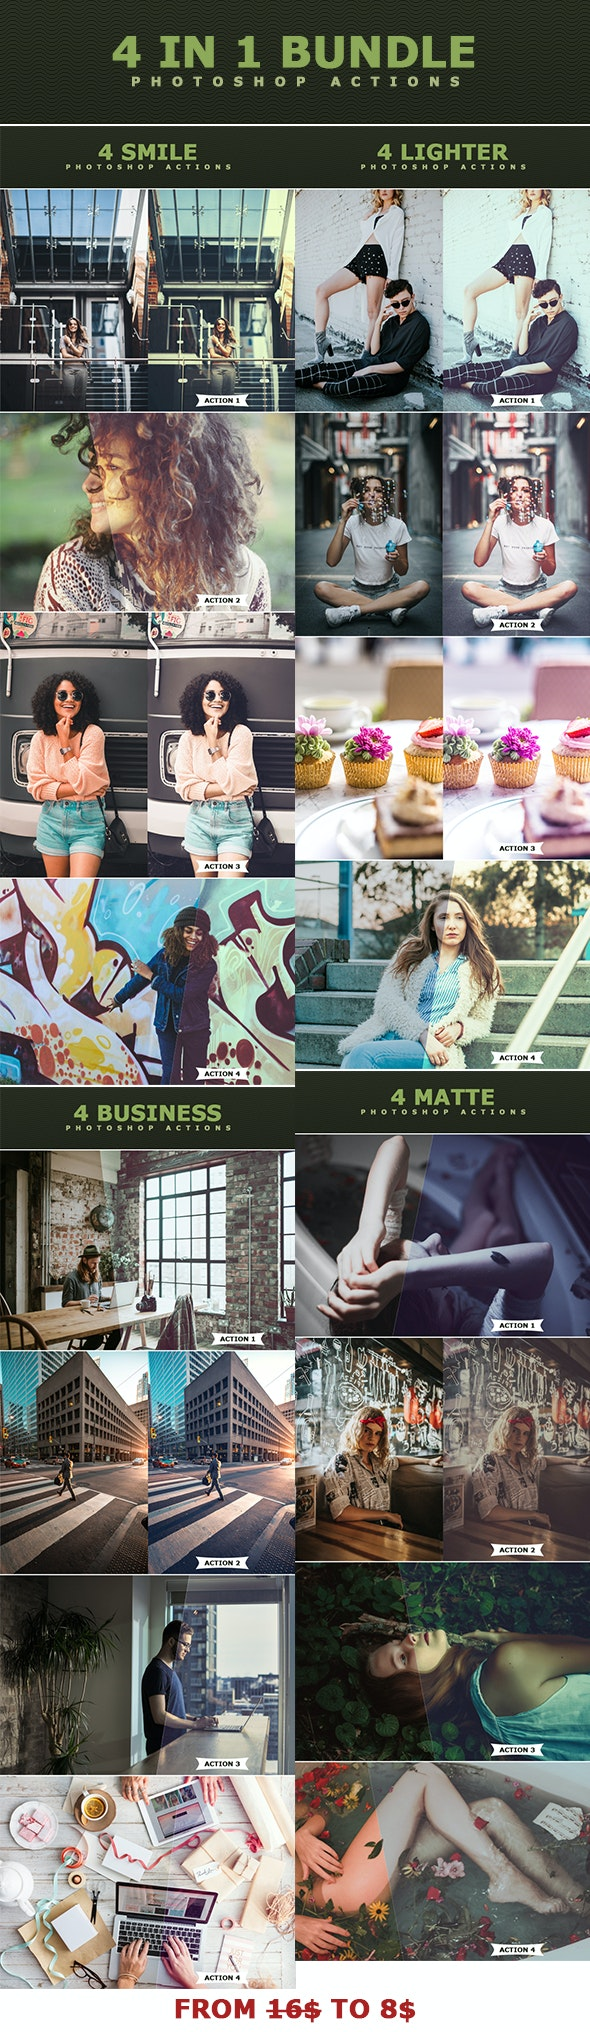 4 IN 1 Photoshop Actions Bundle MAY 2 - Photo Effects Actions